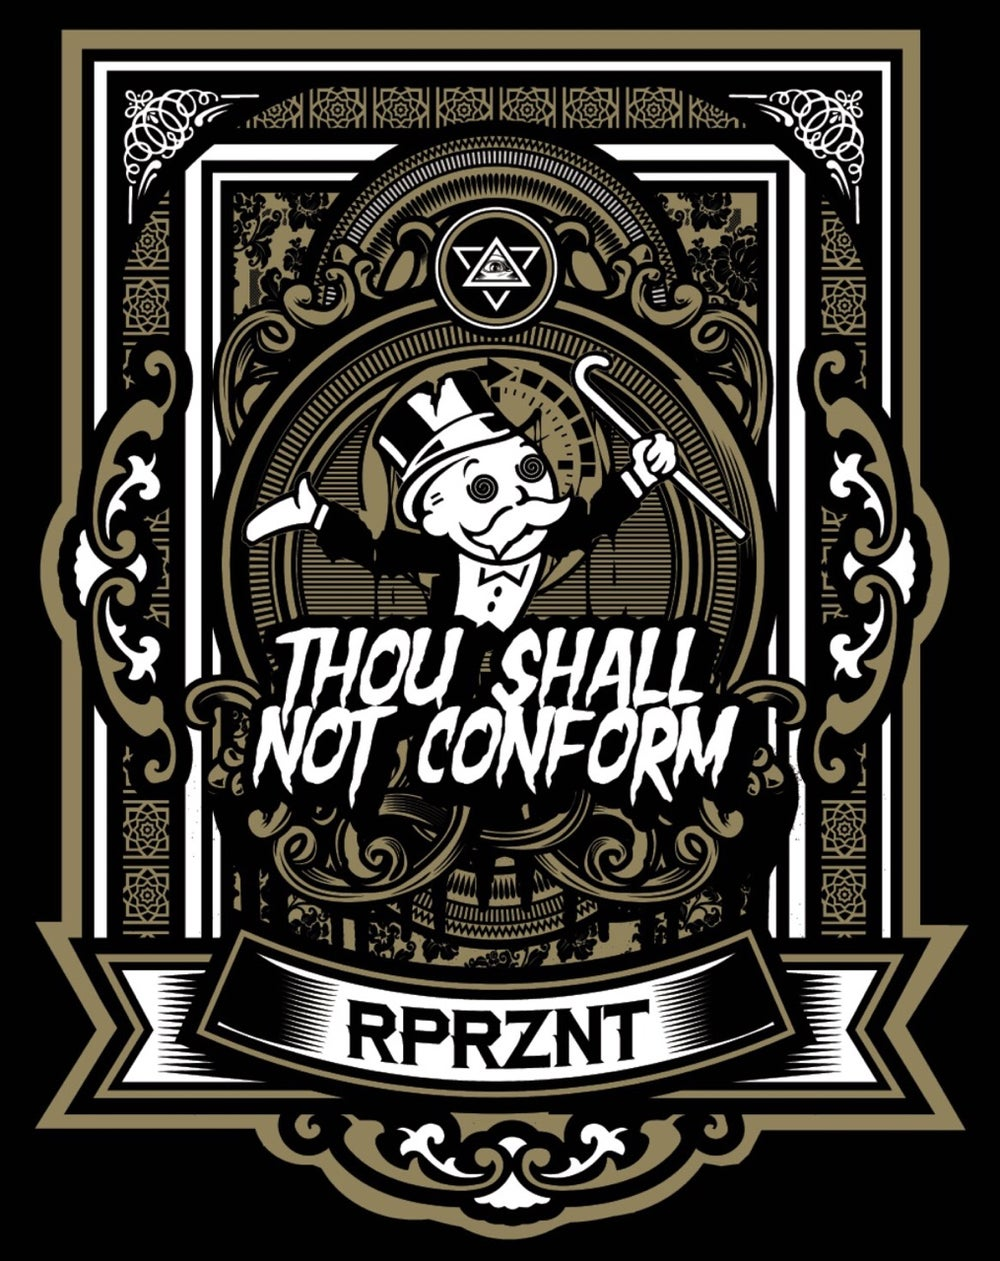 Image of Thou Shall Not Conform